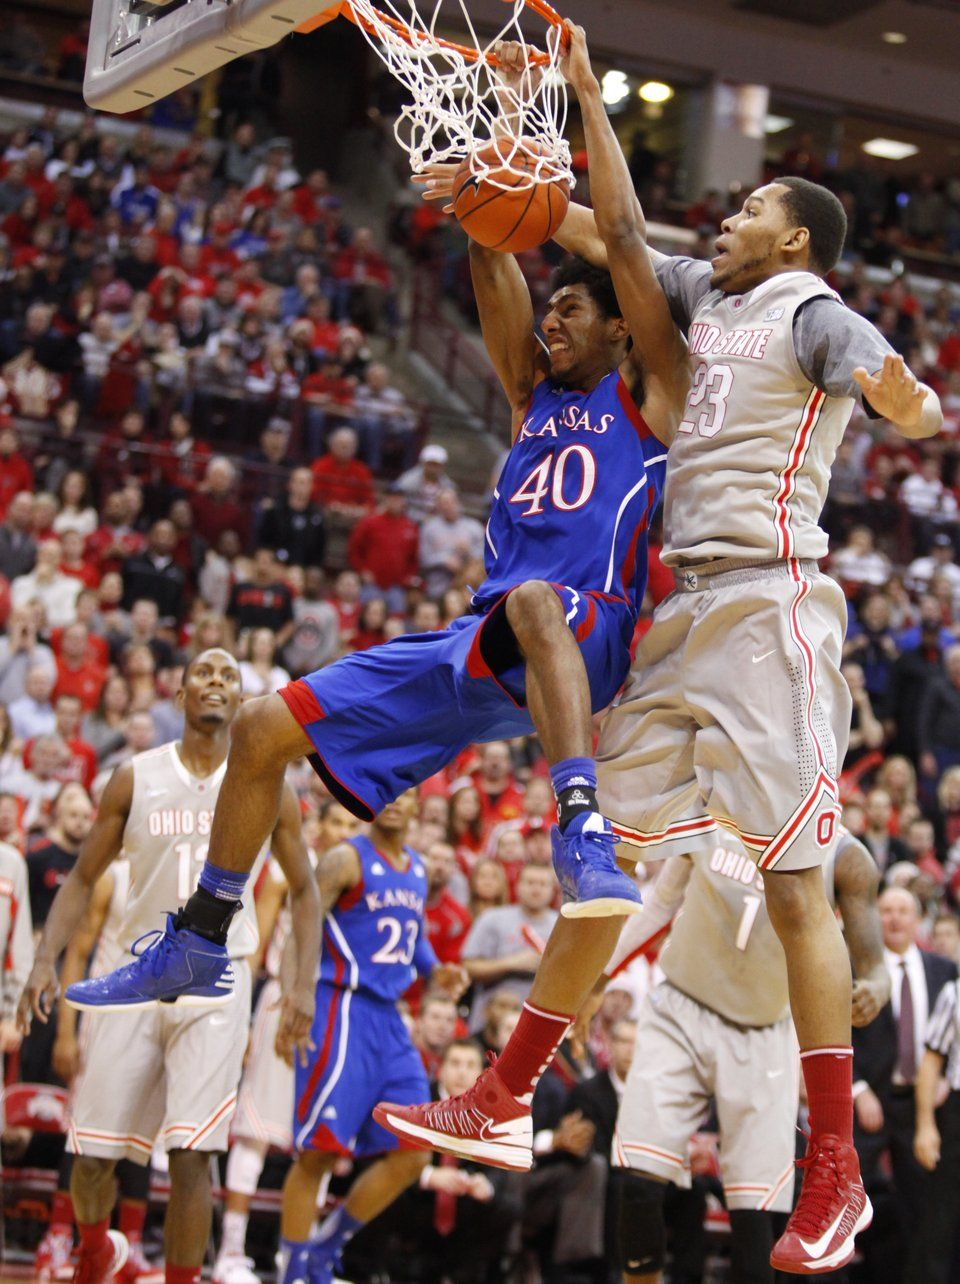 Kansas forward Kevin Young finishes a dunk and gets a foul